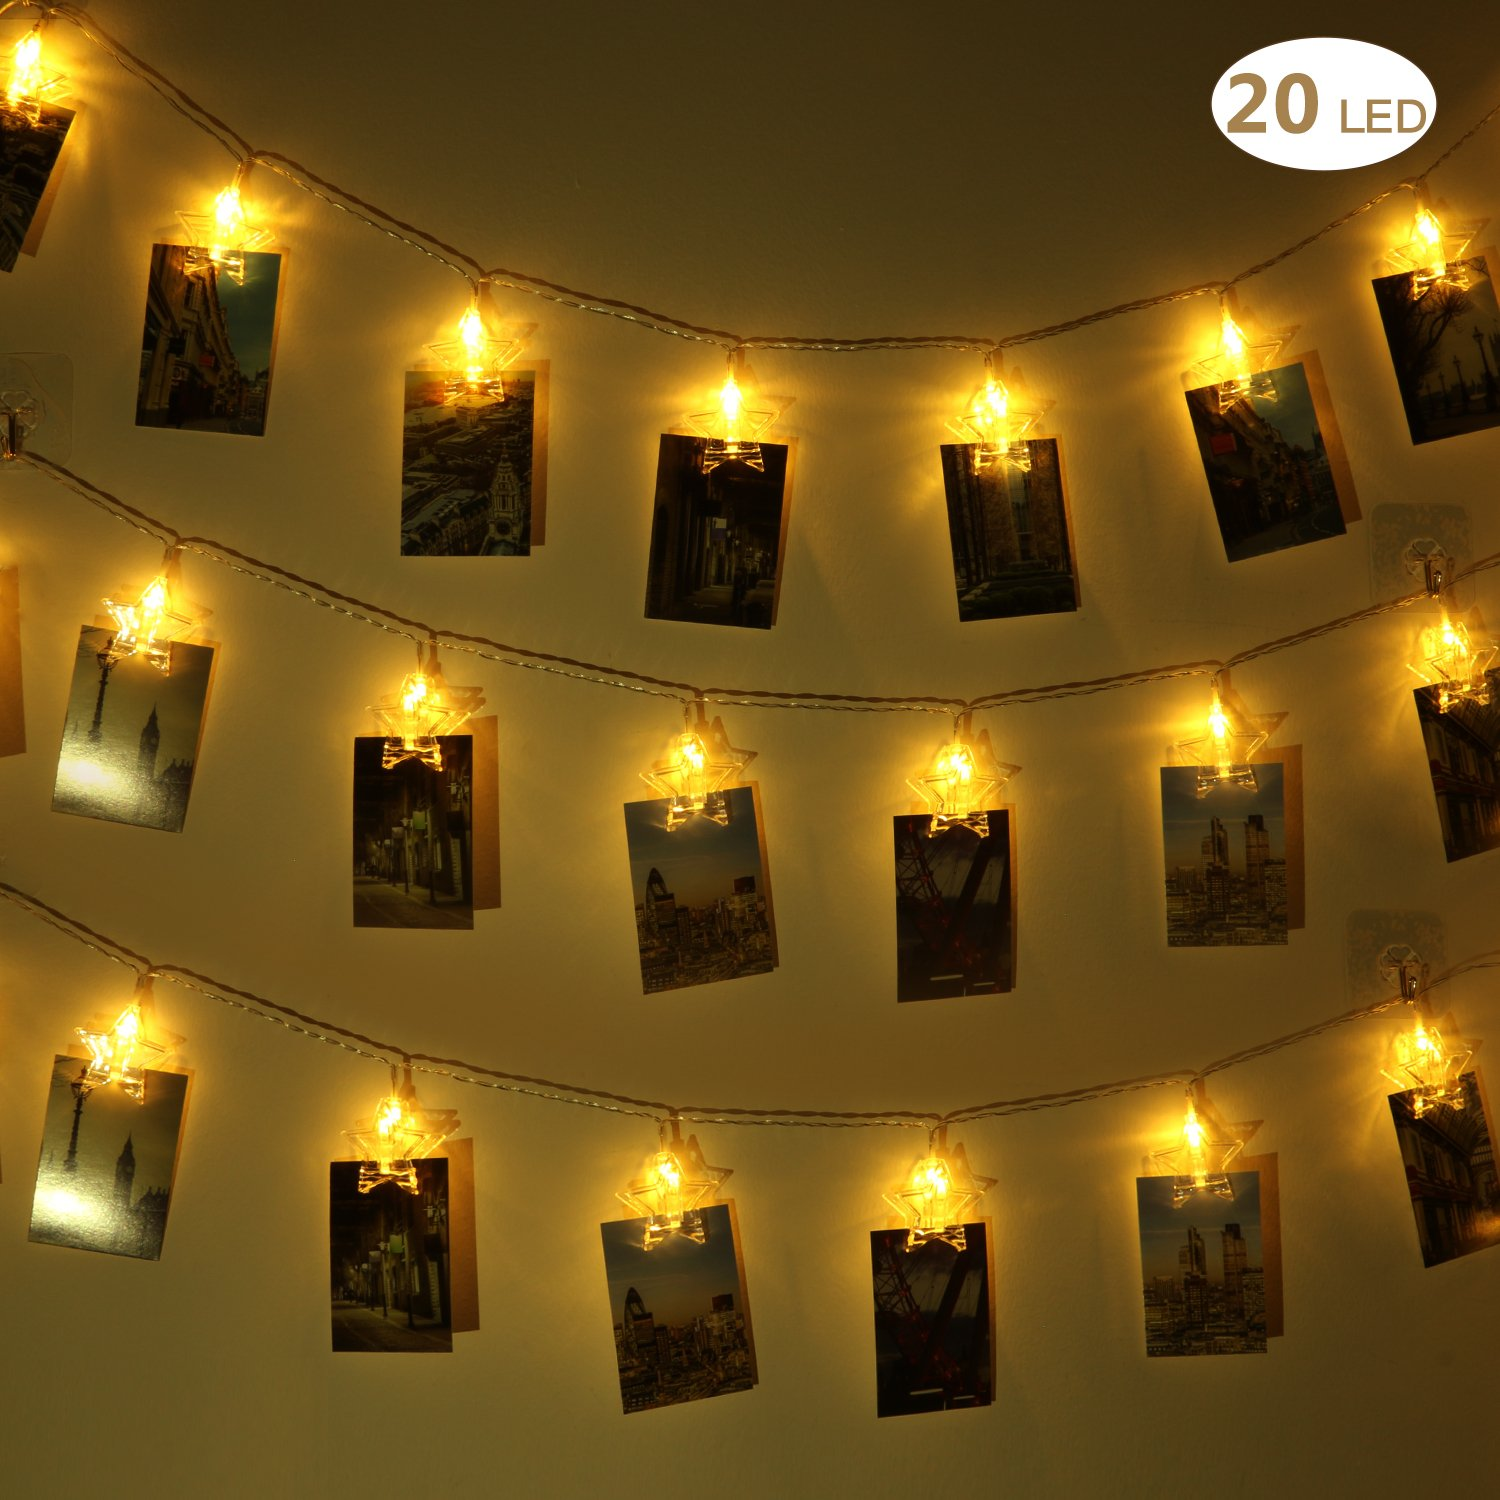 Yeeteching 16 ft USB Powered LED Photo Star Clip String Lights(Warm White) - 20 Photo Clips for Home Wedding Birthday Decor - Perfect for Hanging Pictures, Notes, Artwork